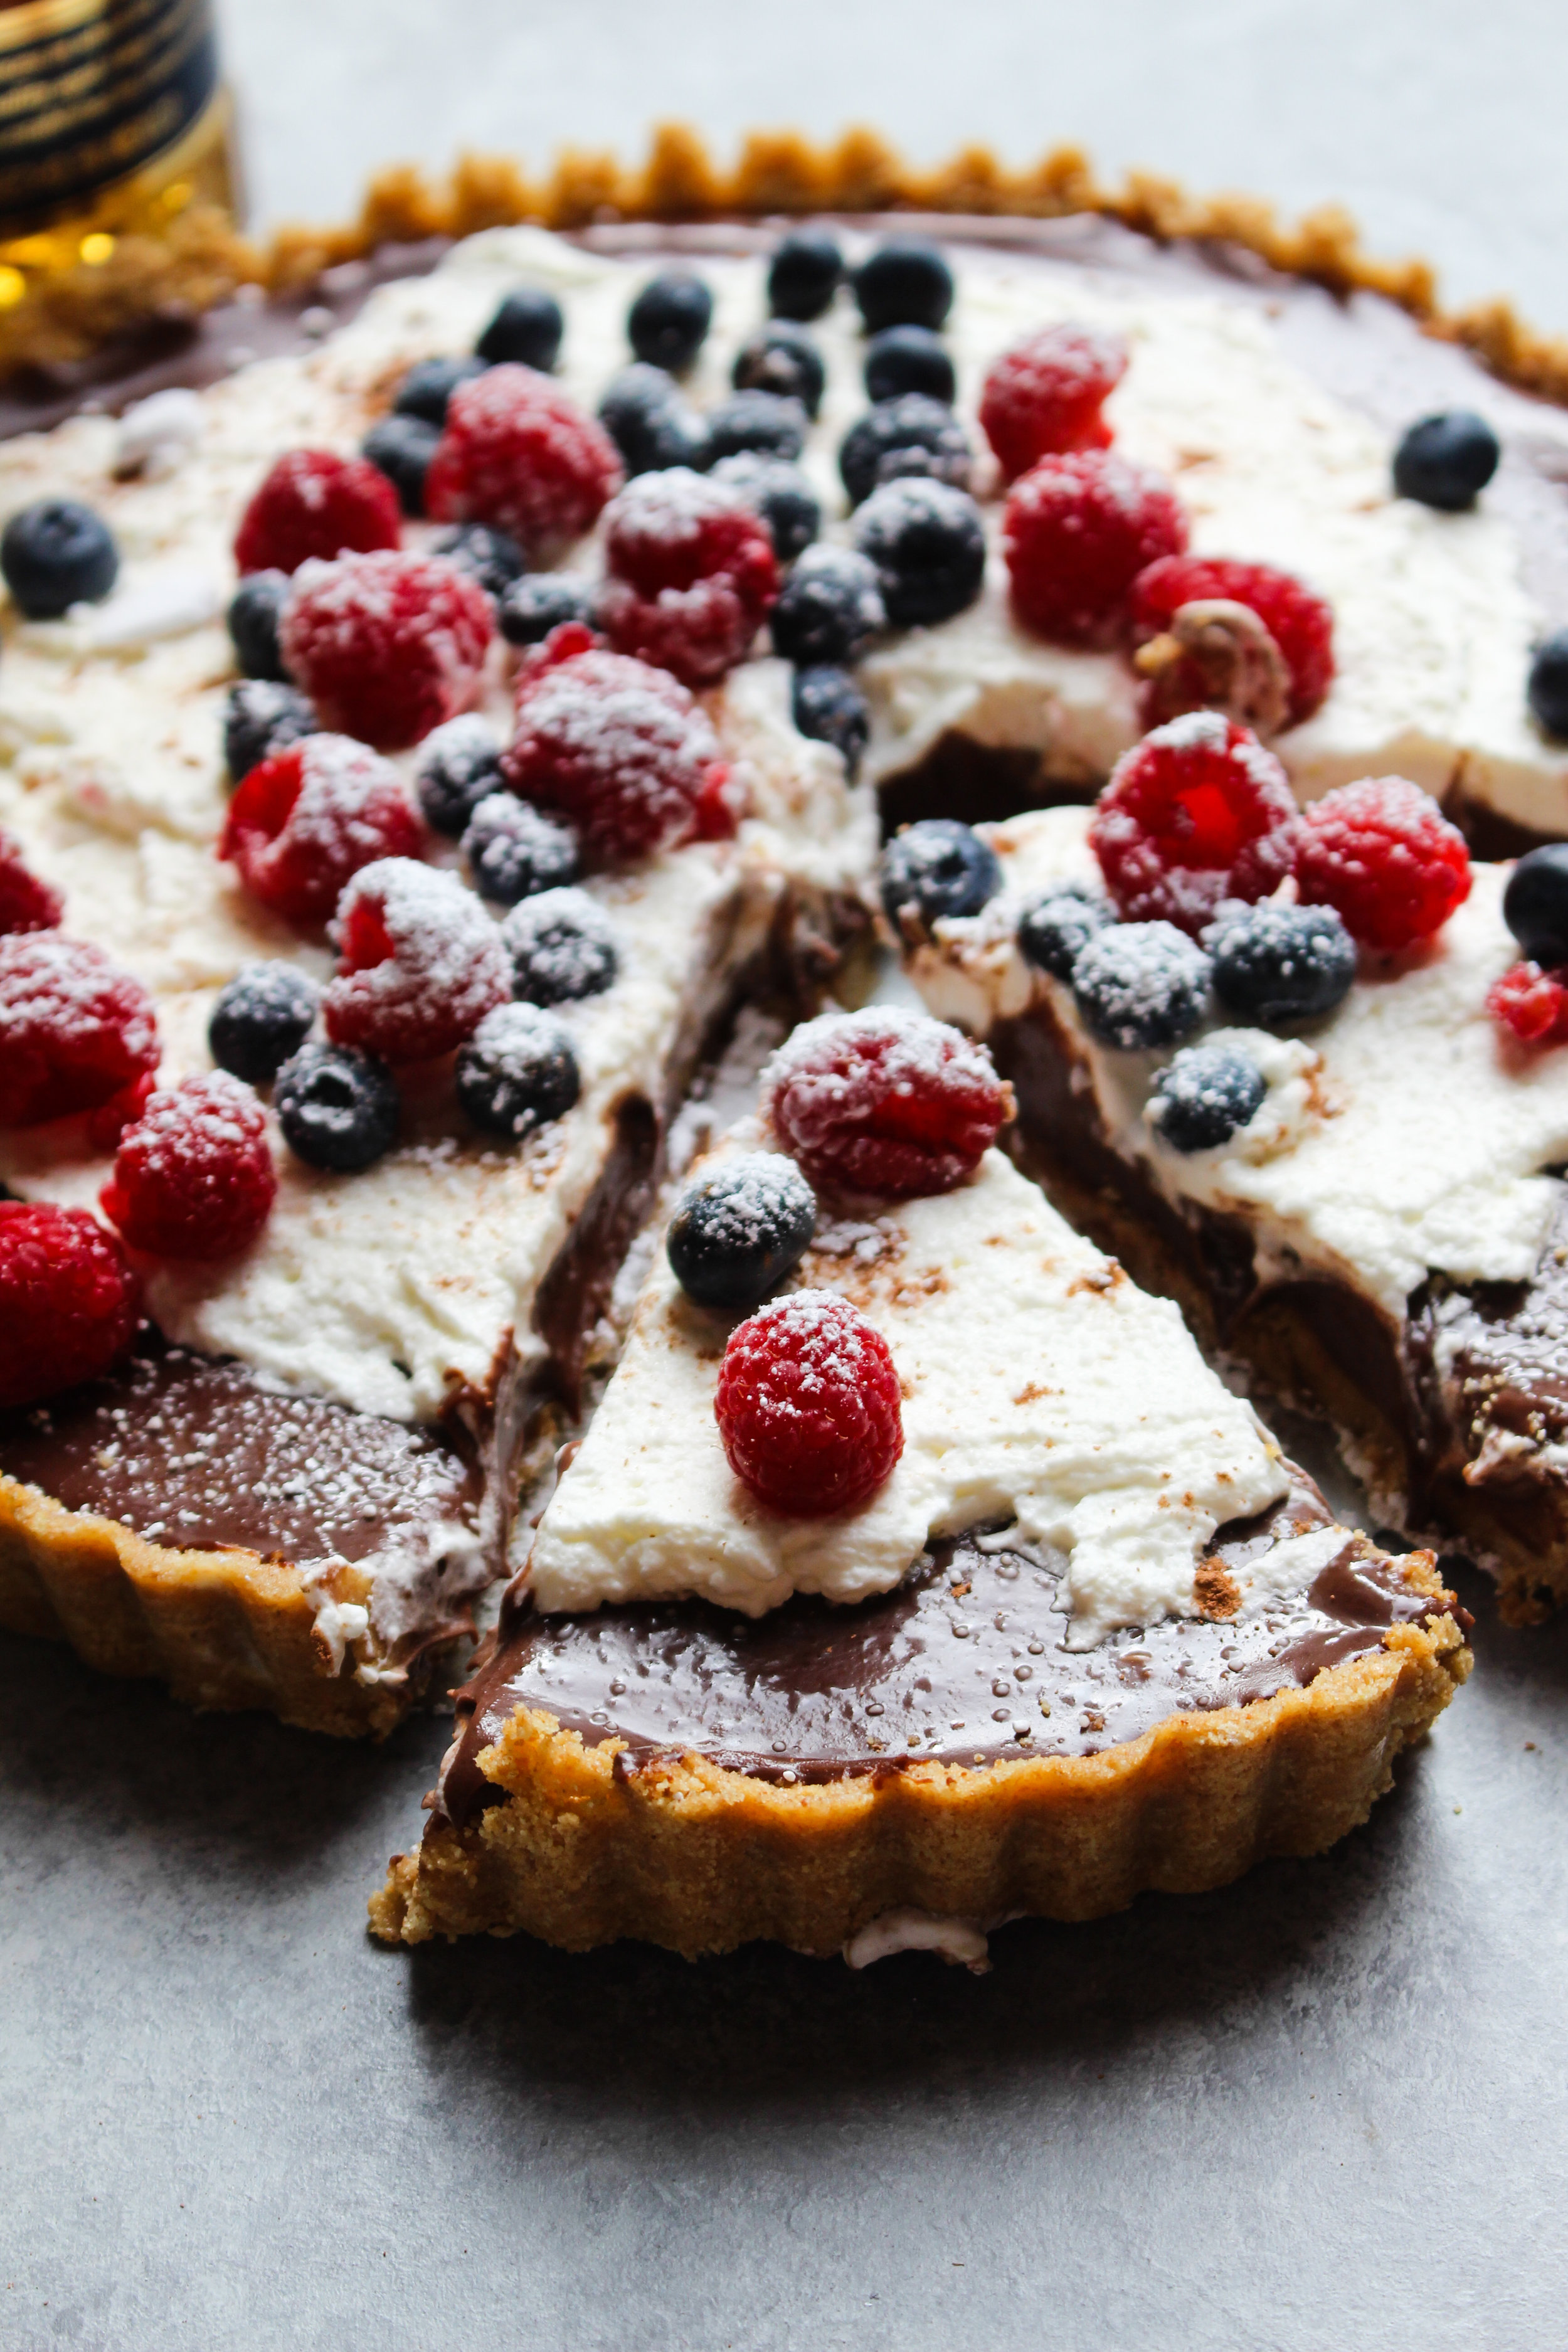 Spiked_Tequila_Mexican_Tart-14.jpg